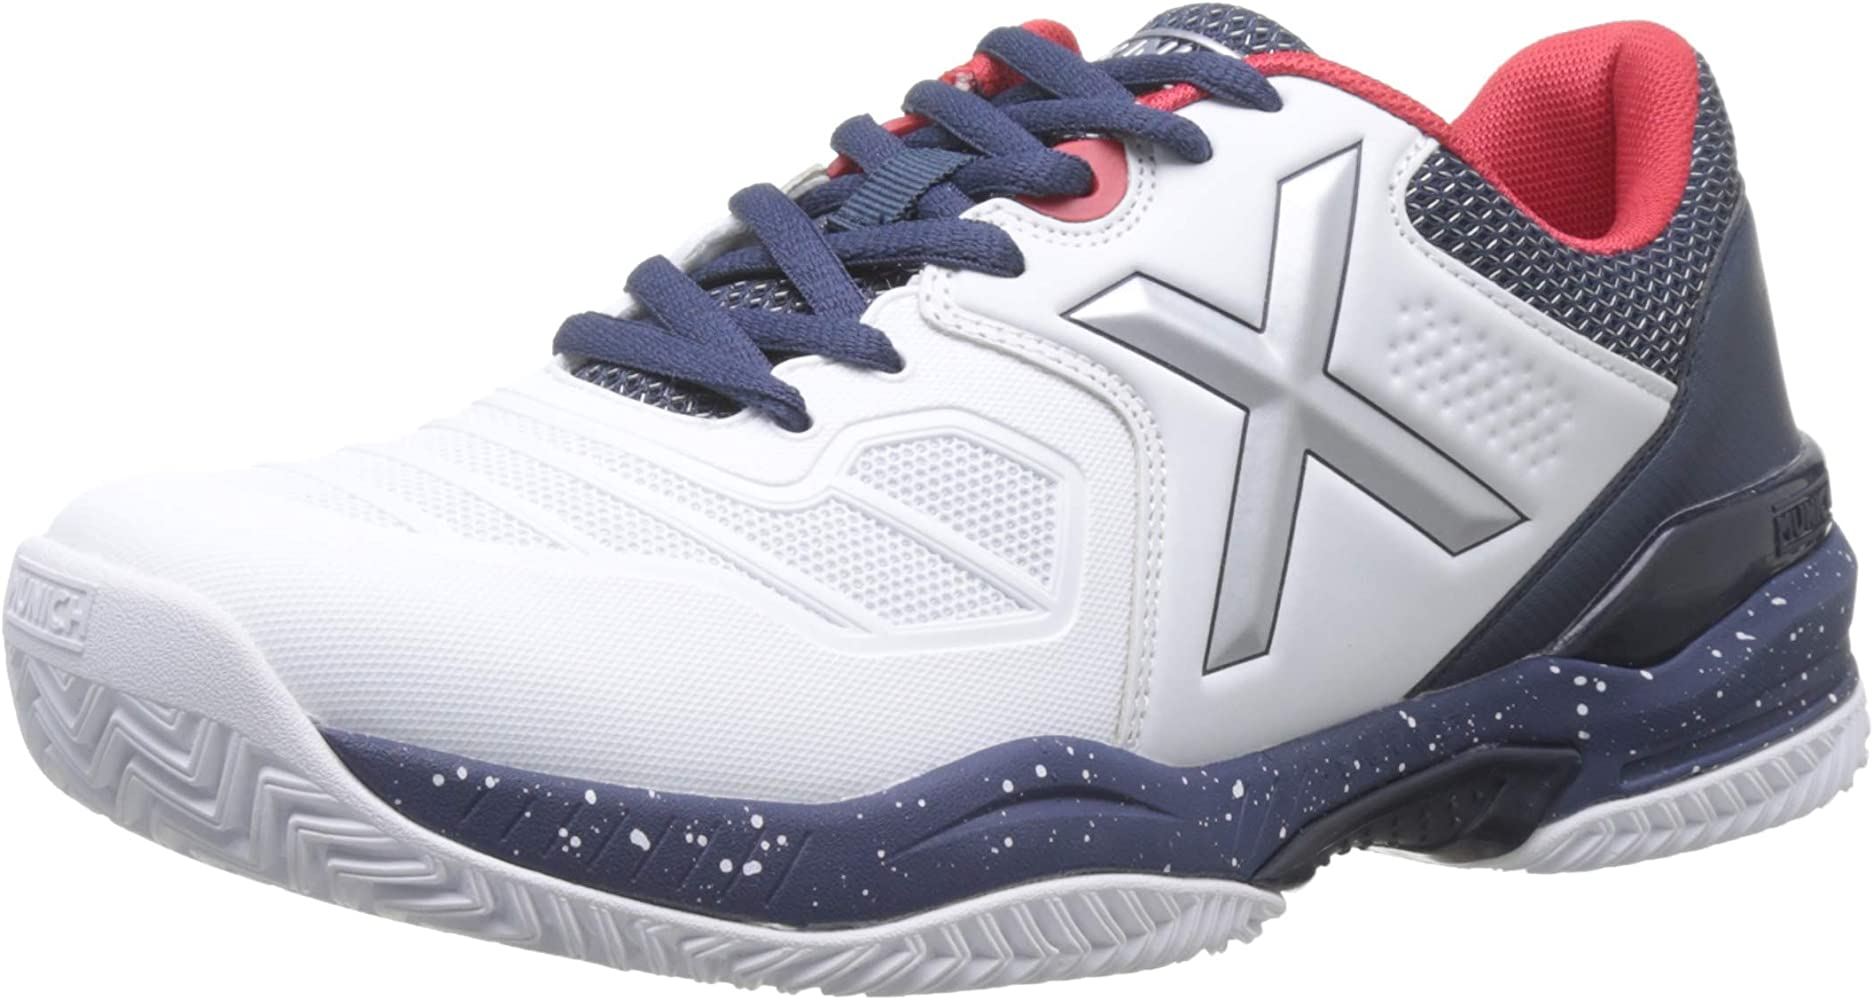 Munich Pad 2 14 Padel, Zapatillas de Deporte para Hombre